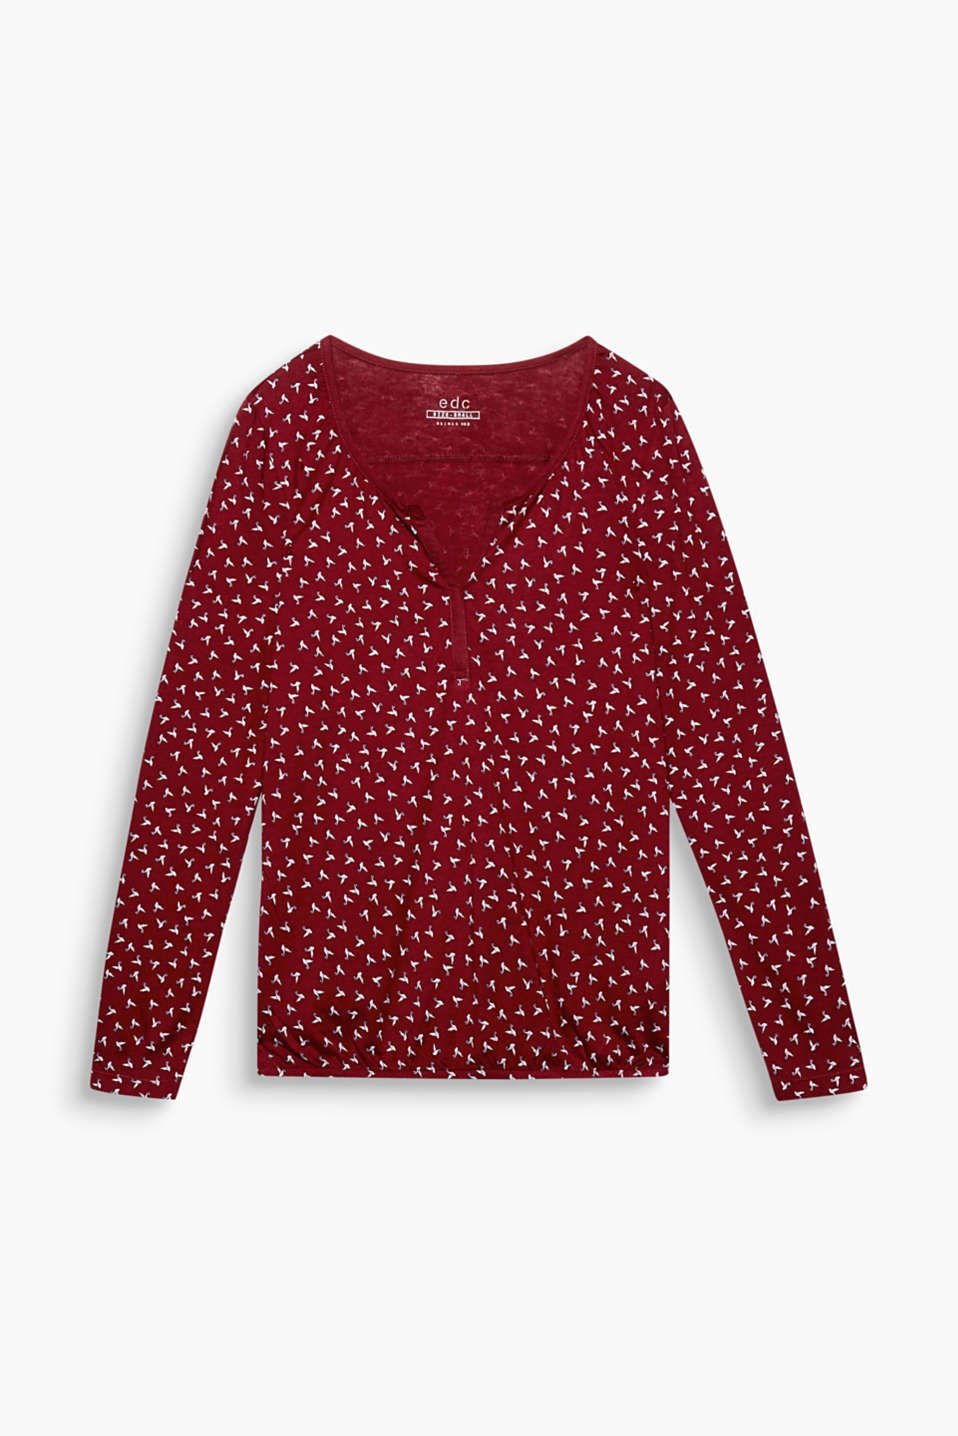 A minimalist bird print and a cup-shaped neckline create a feminine look for this top.